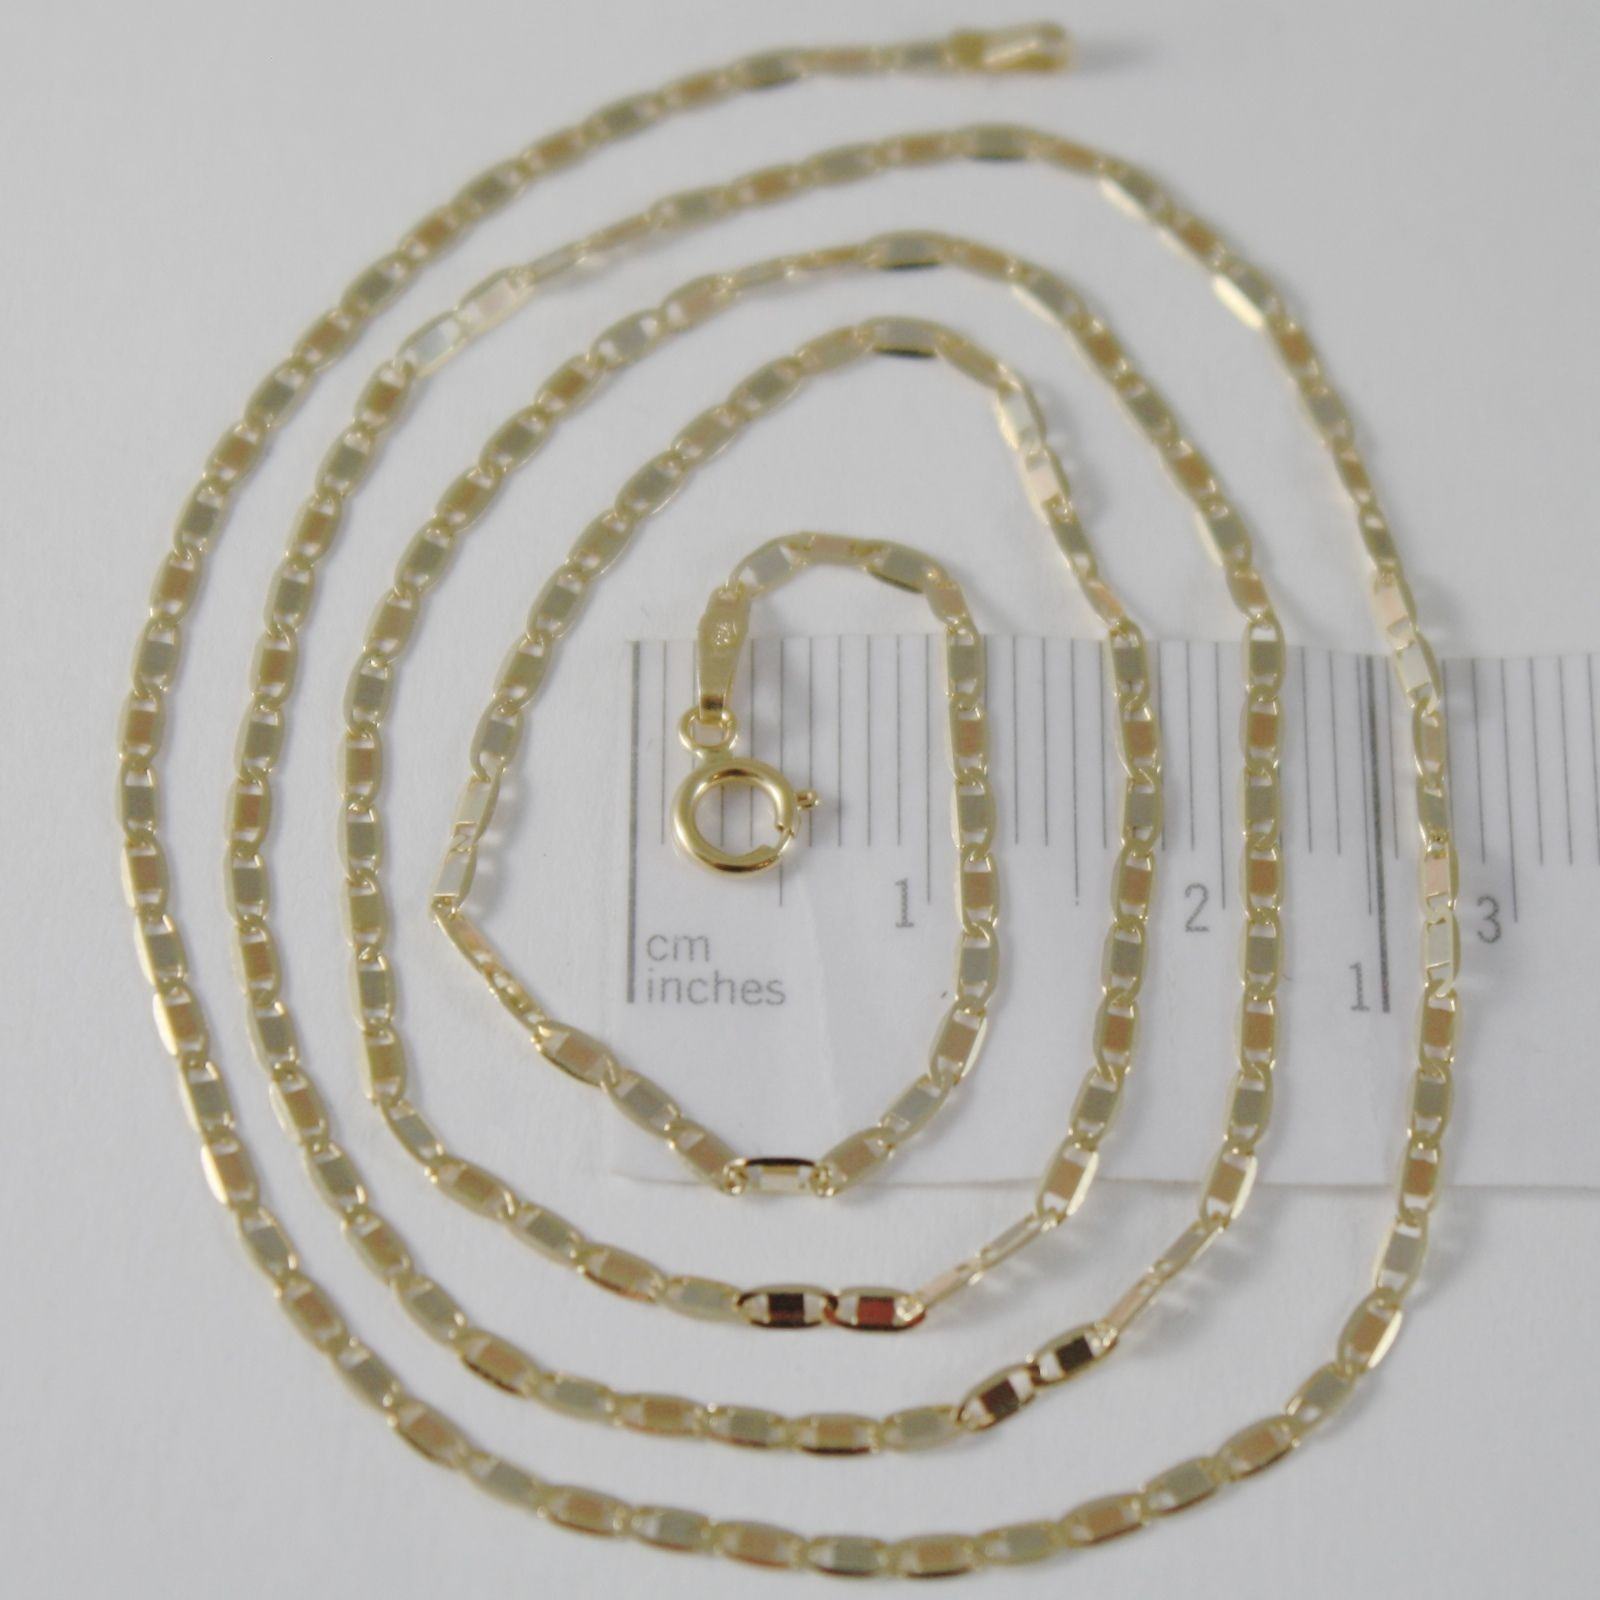 18K YELLOW WHITE ROSE GOLD FLAT BRIGHT OVAL CHAIN 18 INCHES, 2 MM MADE IN ITALY